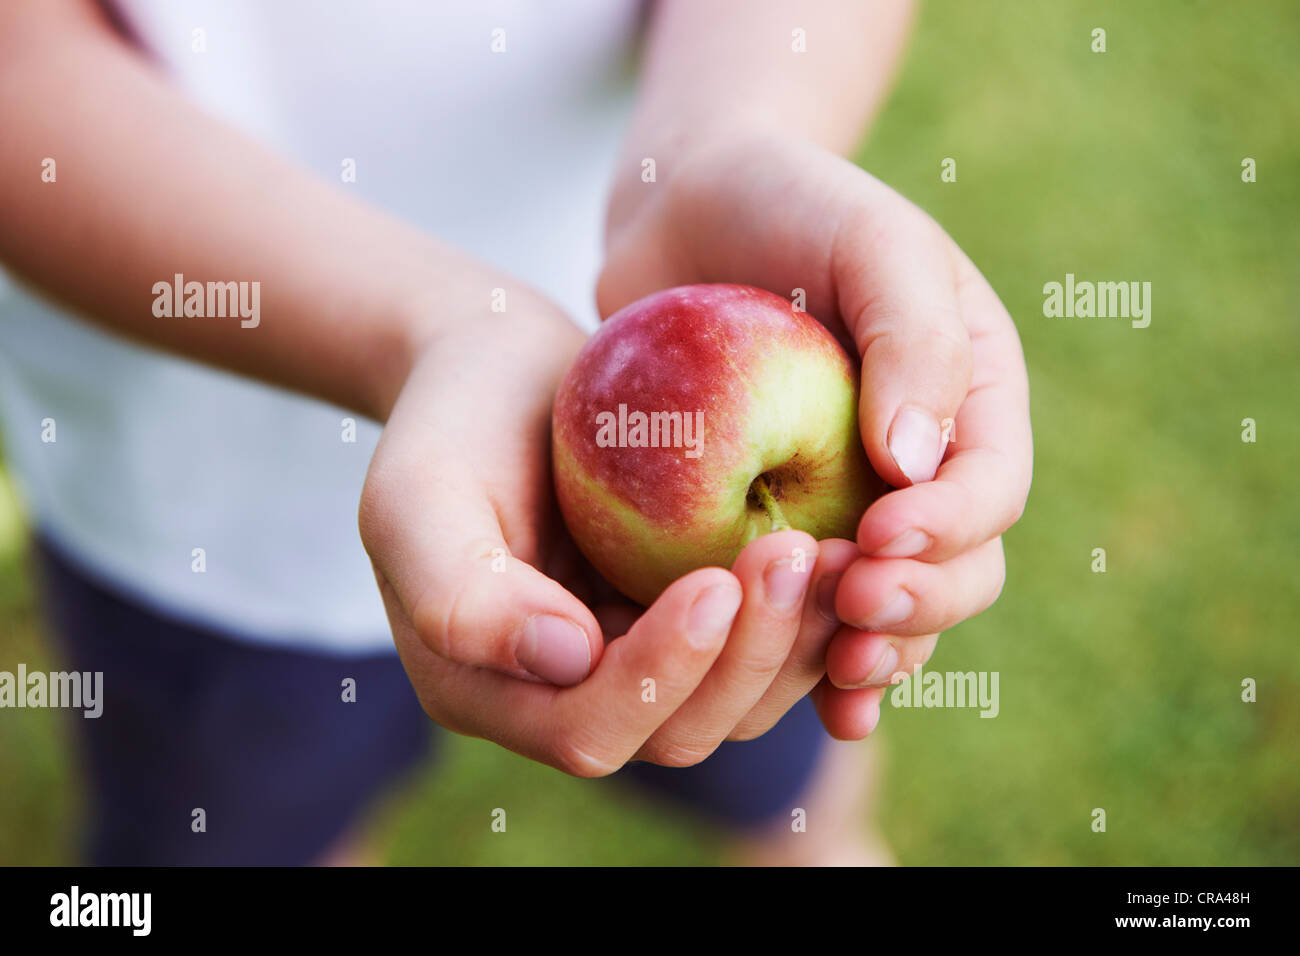 Close up of cupped hands holding fruit Photo Stock